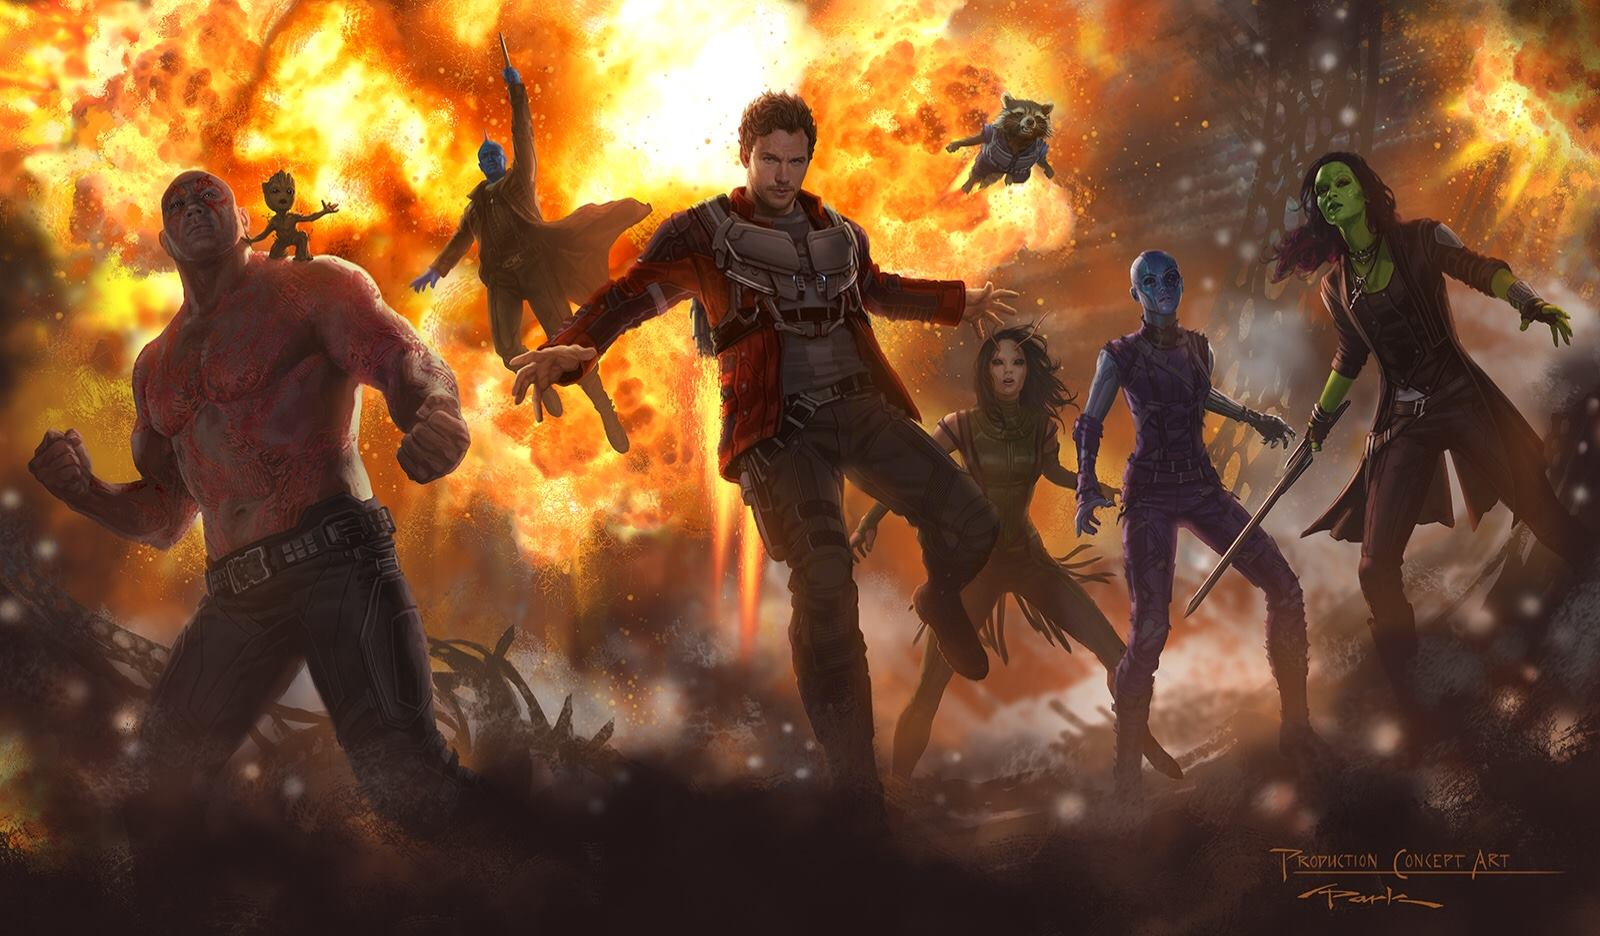 Guardians of the Galaxy Vol. 2 Wallpapers